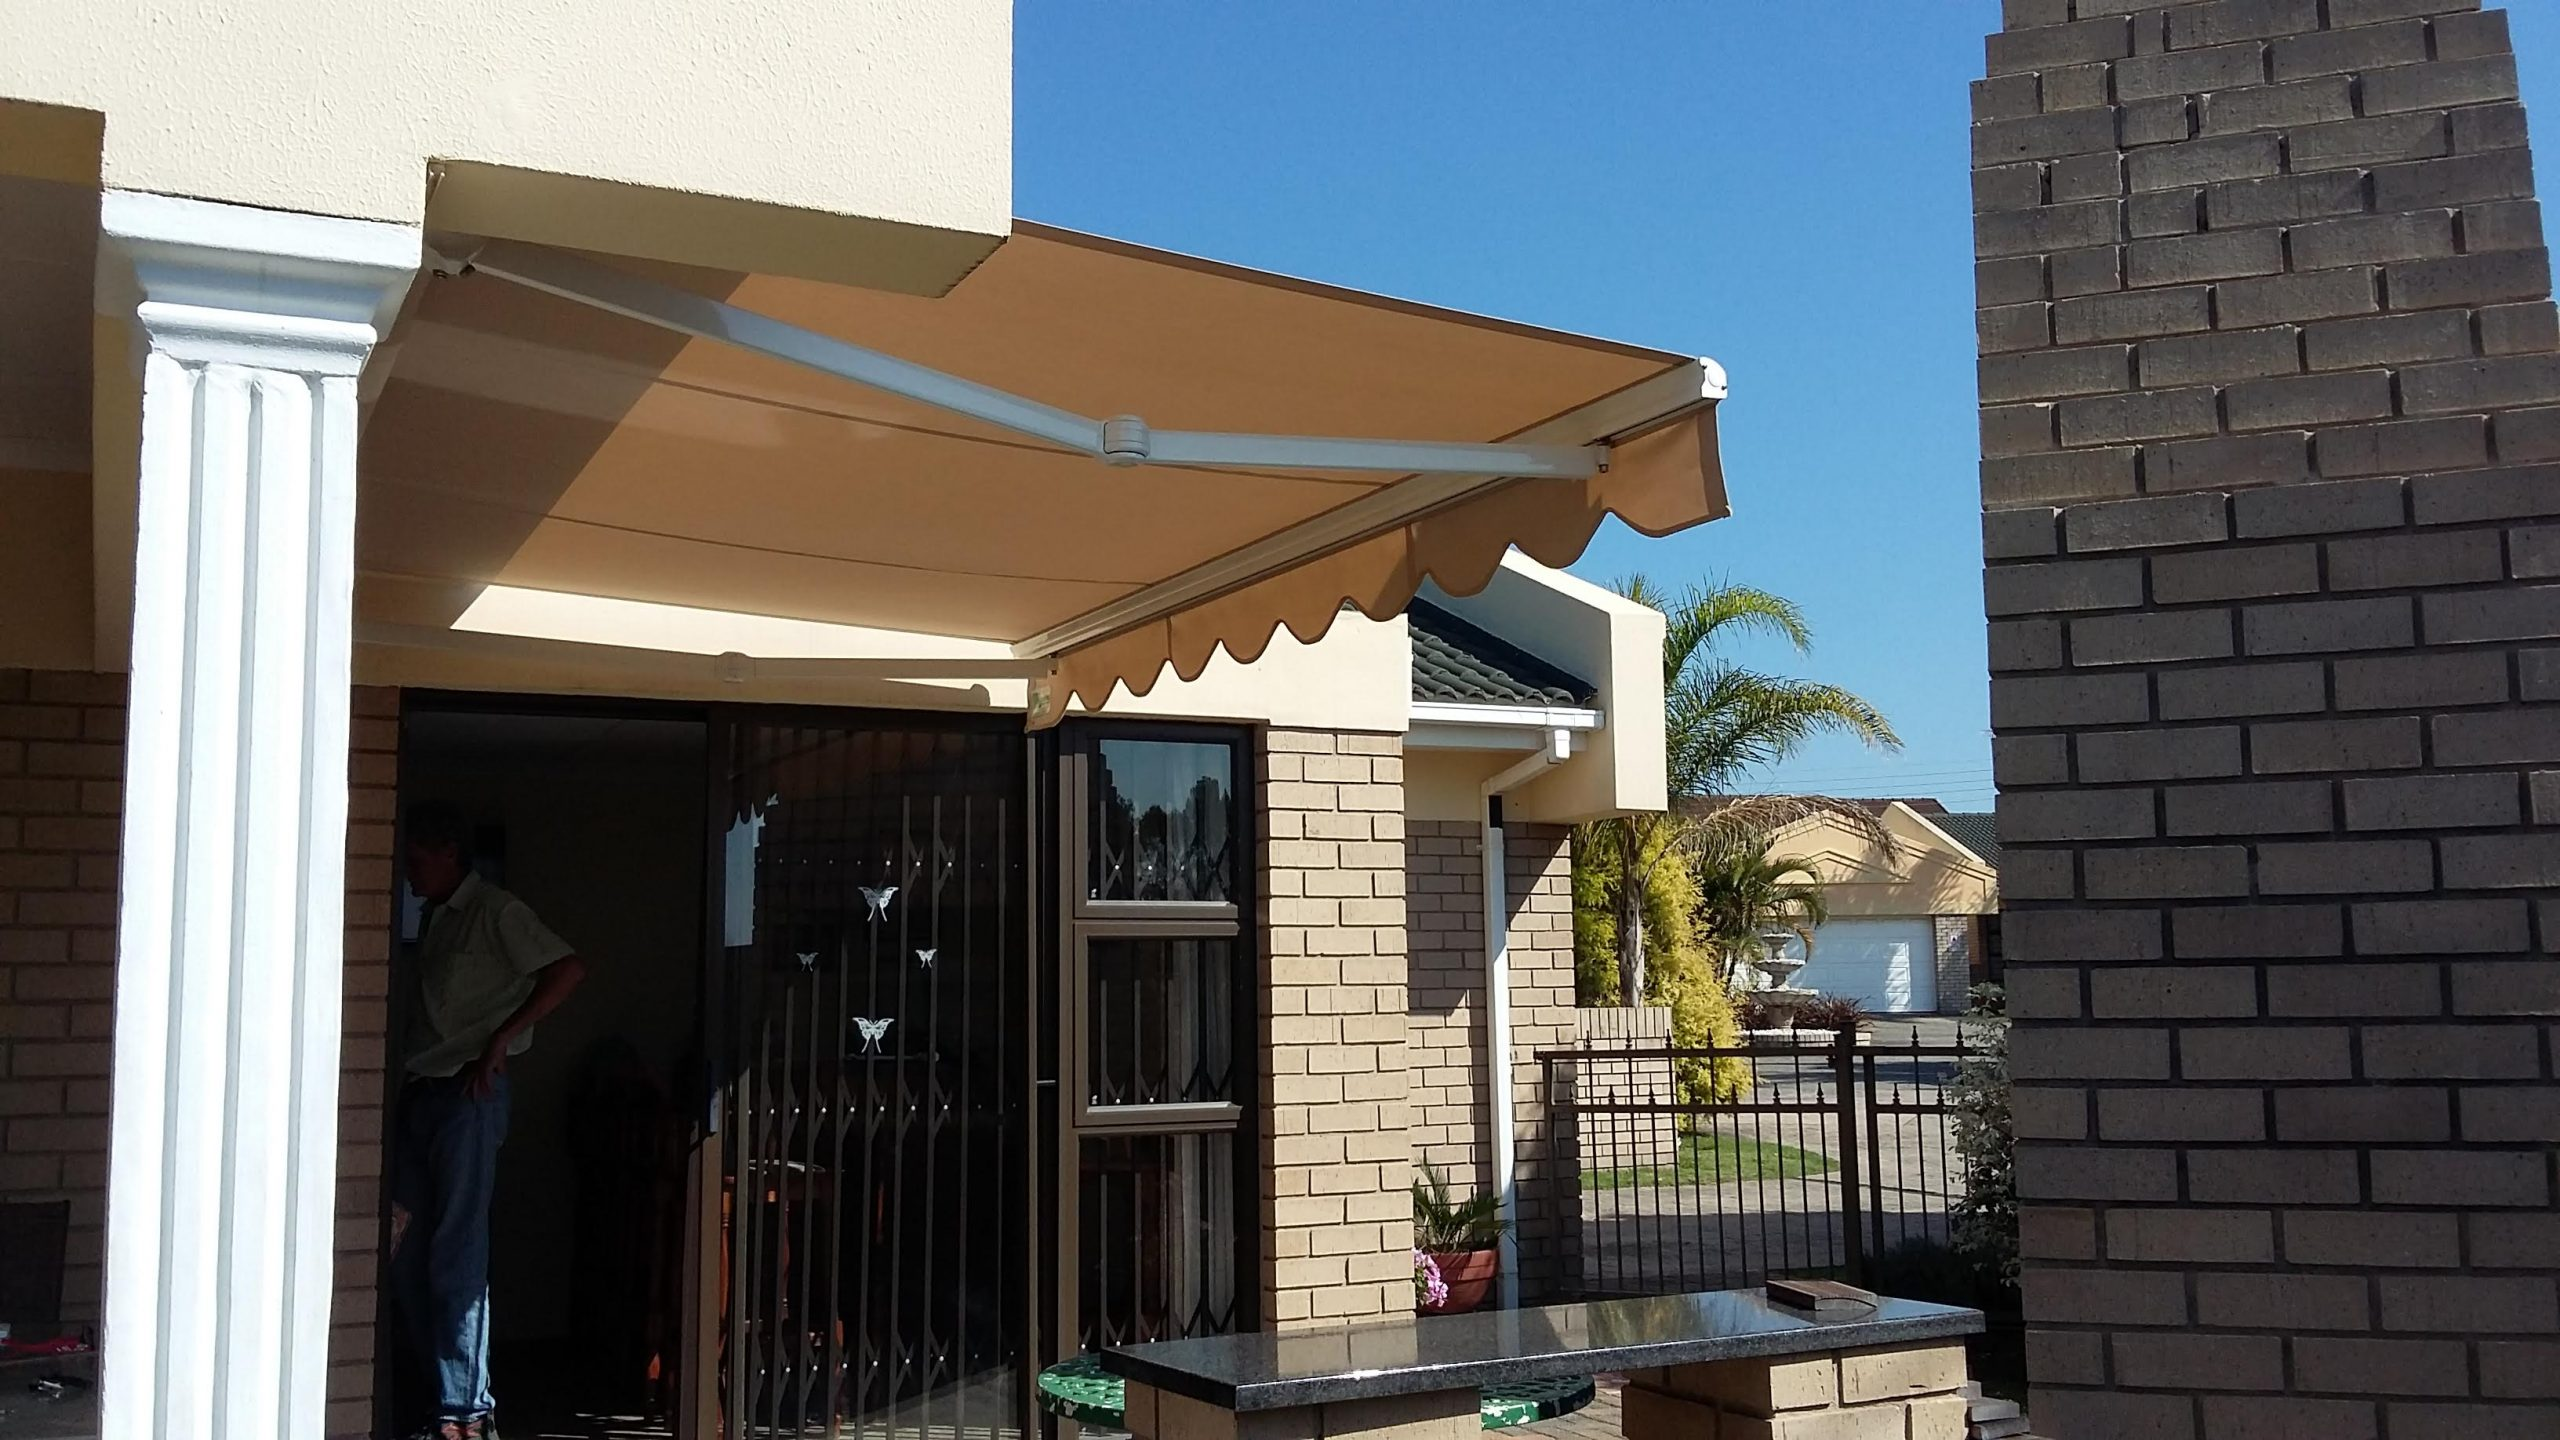 Retractable Canvas Awning installed by All-Awnings